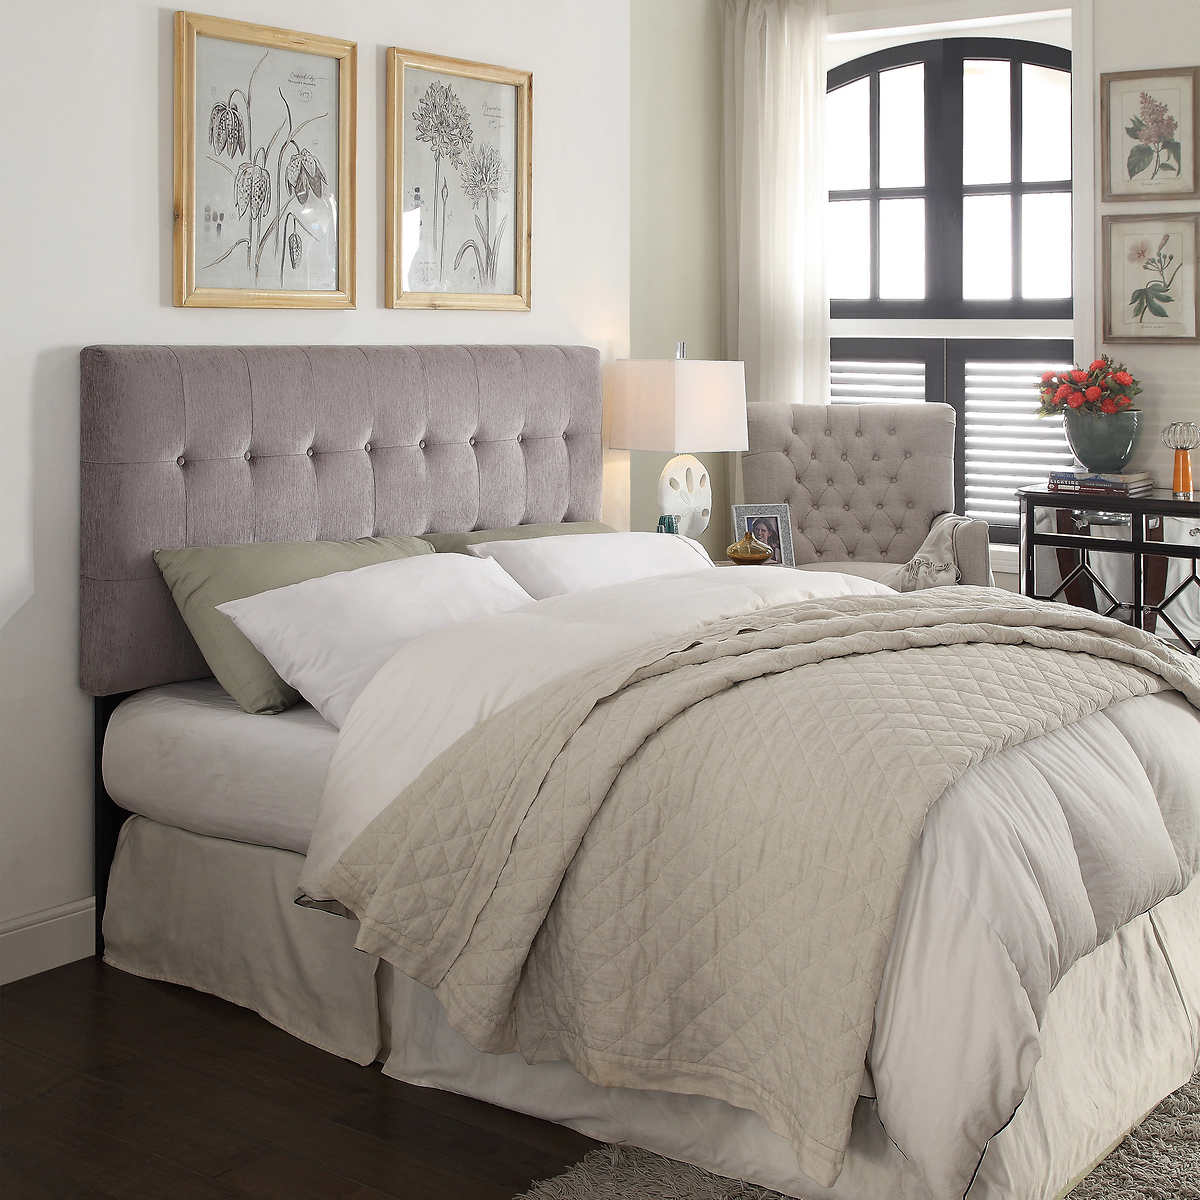 sleep mixed oak case prices cheap compact for bed headboards and upholstered beds frames costco twin white fabric tempurpedic of headboard craftmatic bedding wood full mattress brown sets with footboards hd number adjustable furniture wallpaper tempur base frame bedroom only book pedic murphy size